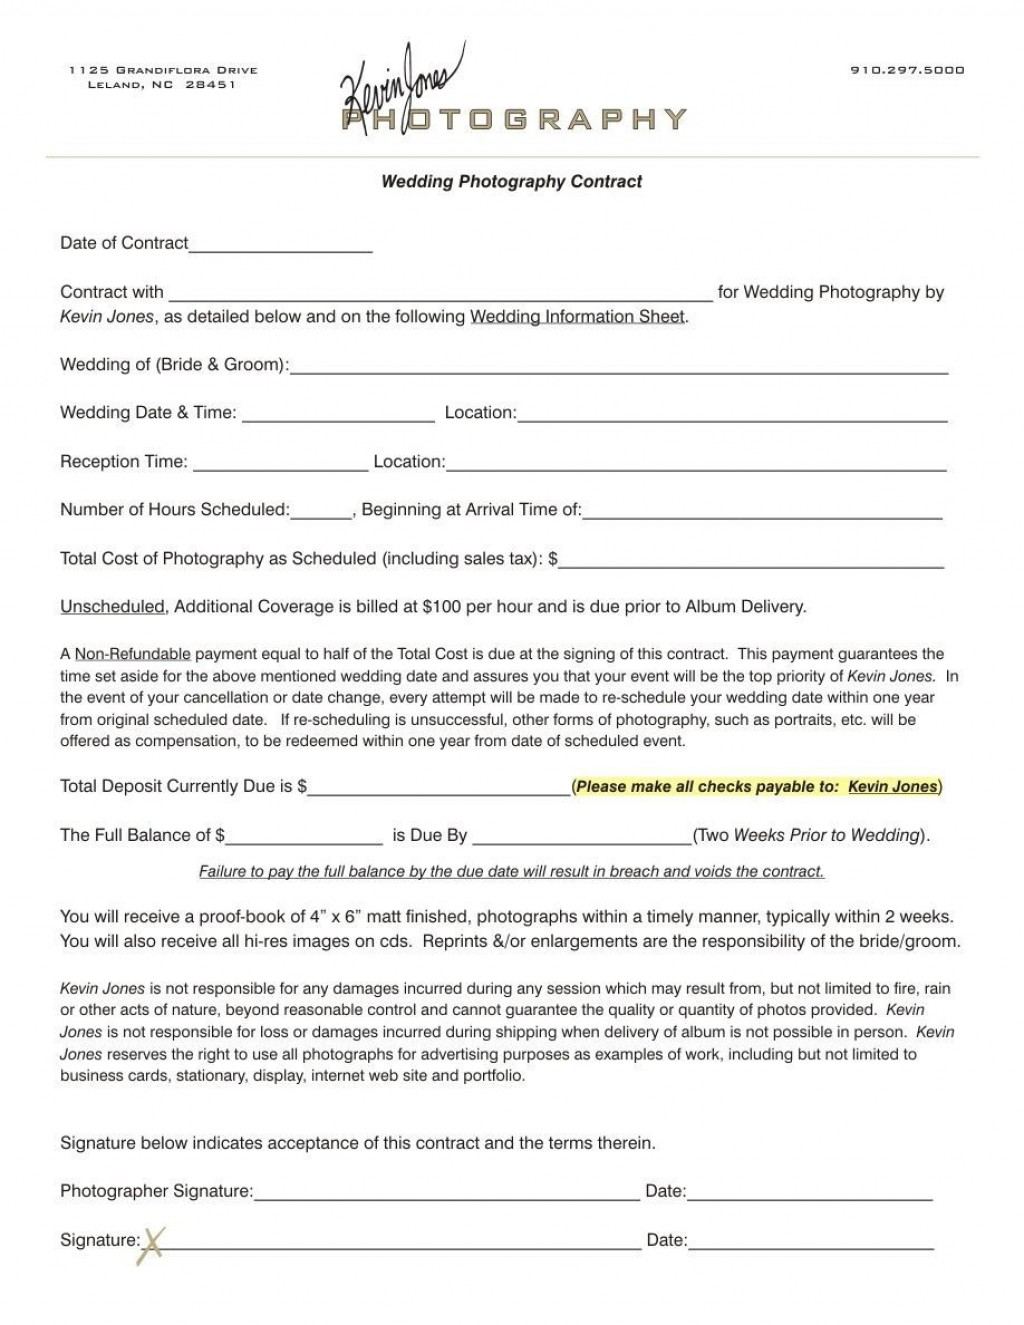 003 Outstanding Wedding Photographer Contract Template Free High Definition  Simple Photography WordLarge